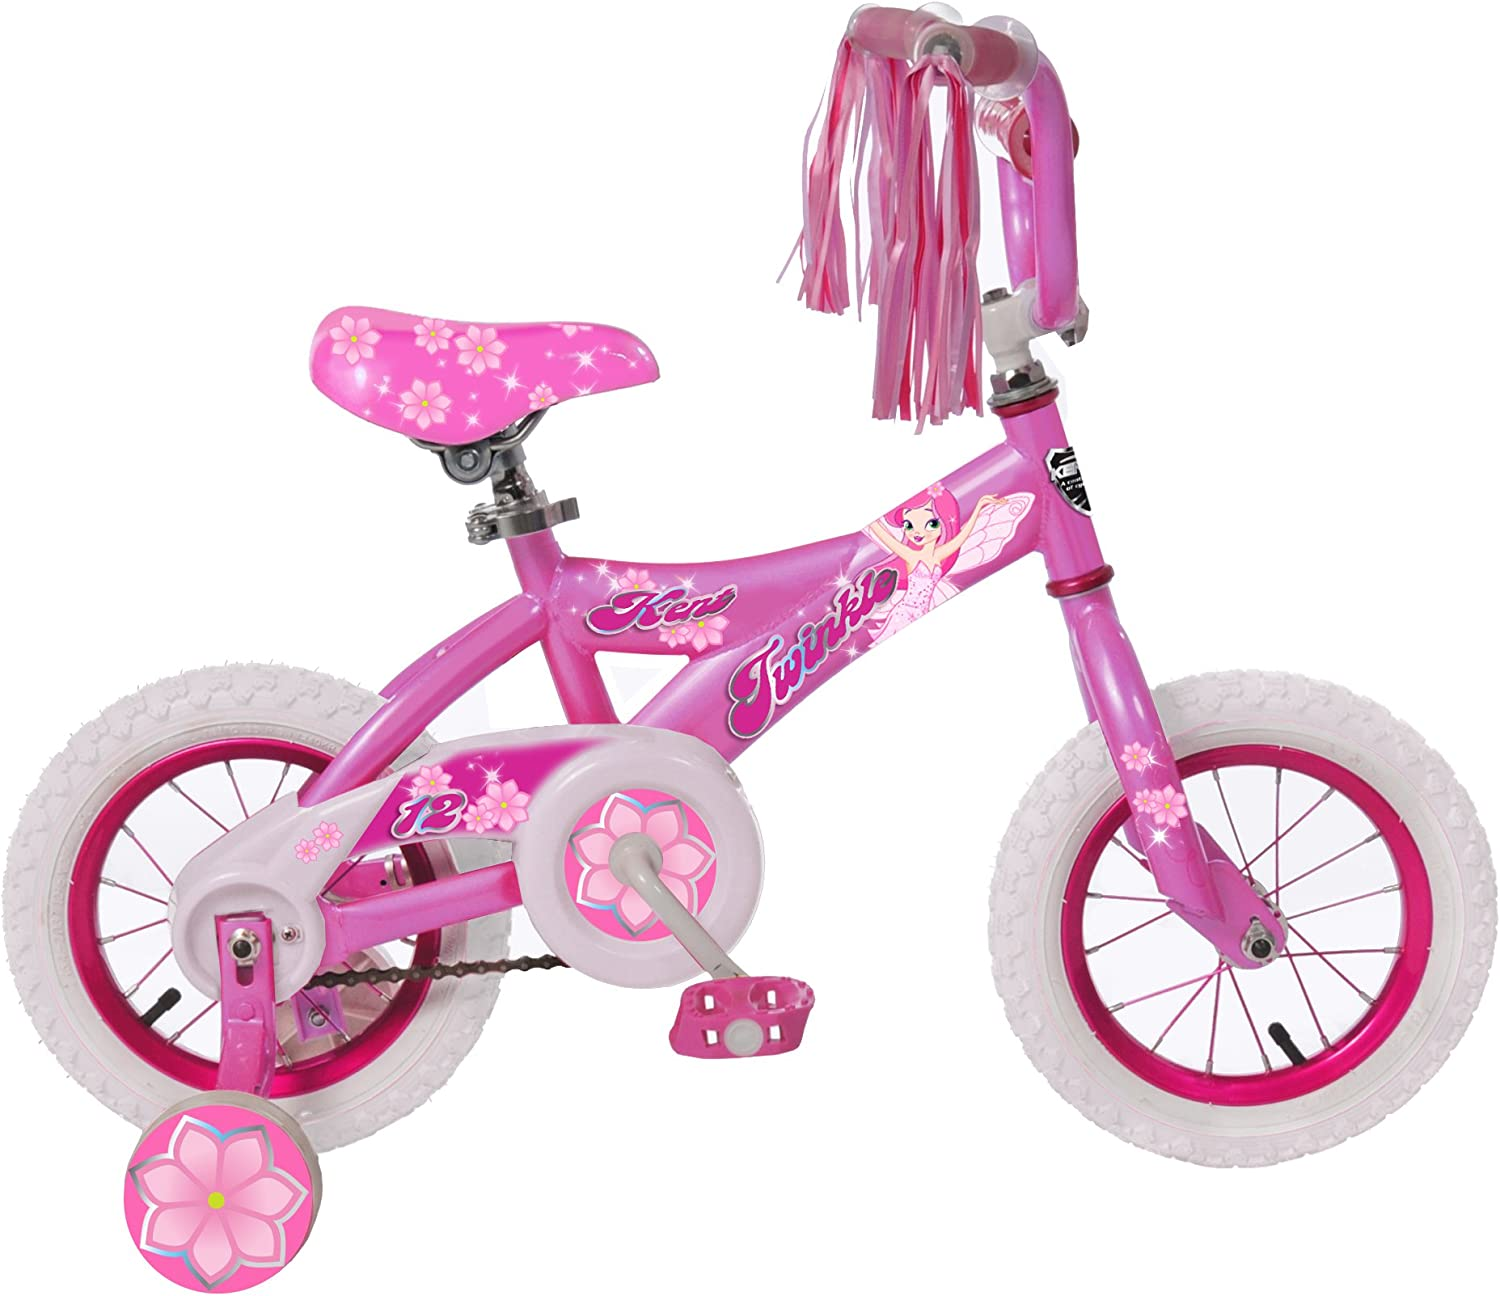 Kent Twinkle Girls Bike, 12-Inch